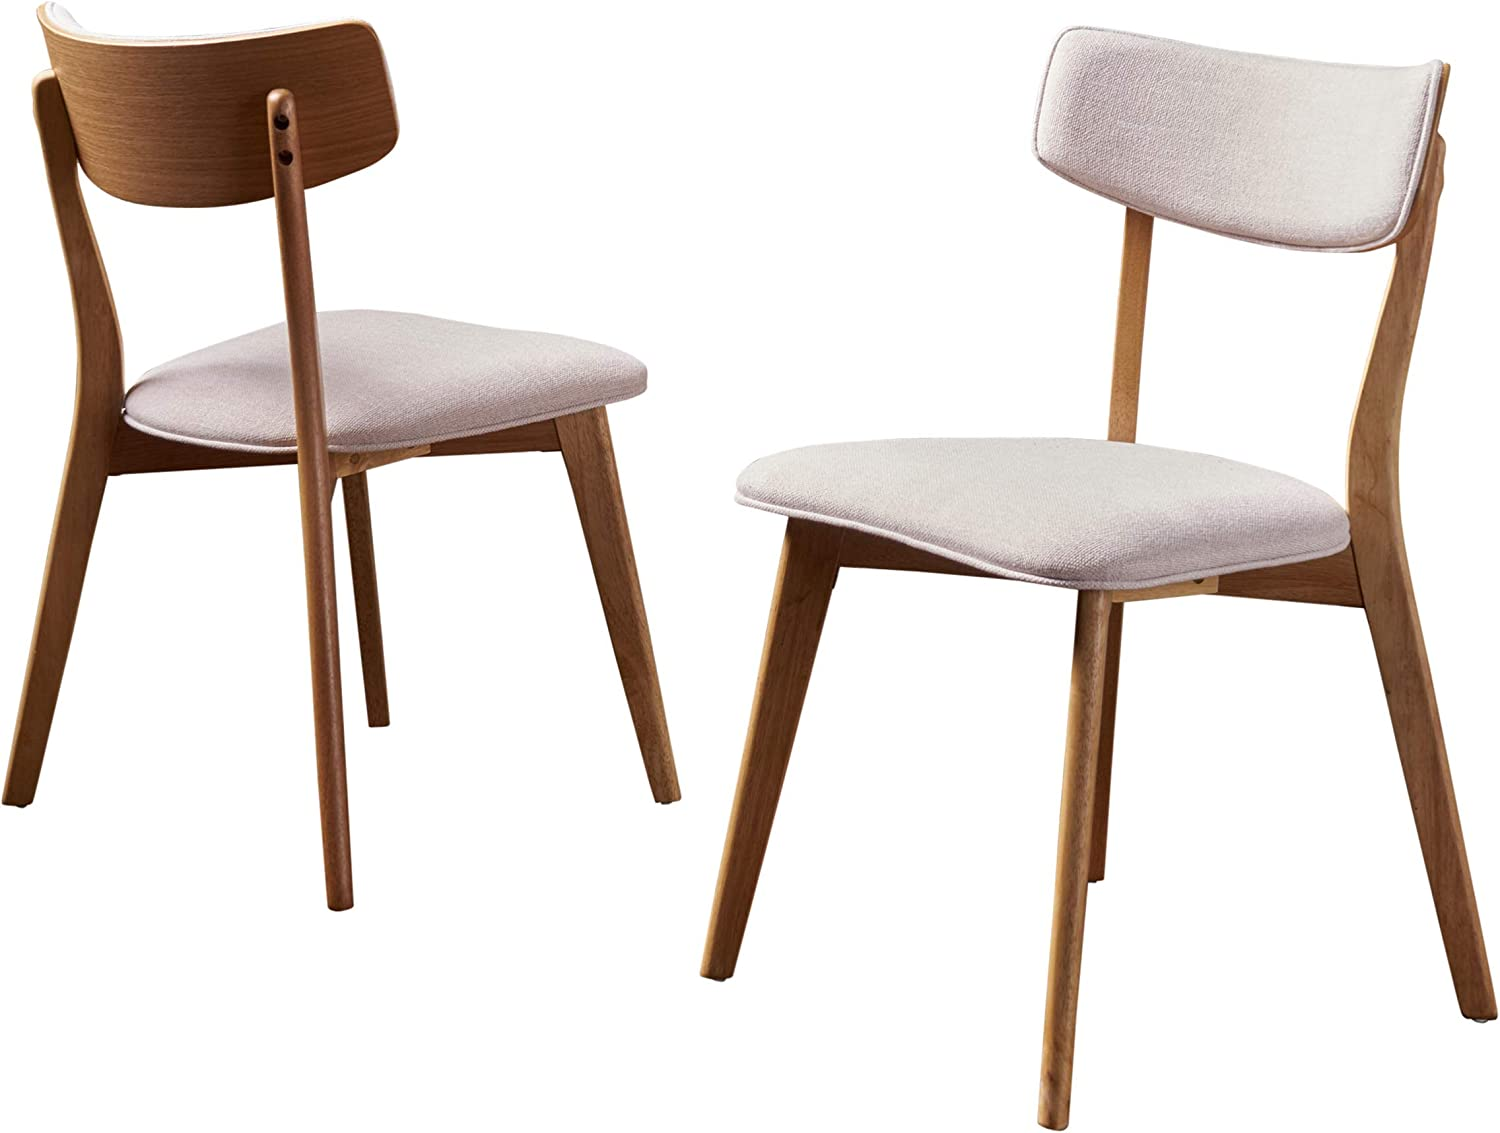 Christopher Knight Home Chazz Mid-Century Fabric Dining Chairs with Natural Oak Finished Frame, 2-Pcs Set, Light Beige / Natural Oak Finish